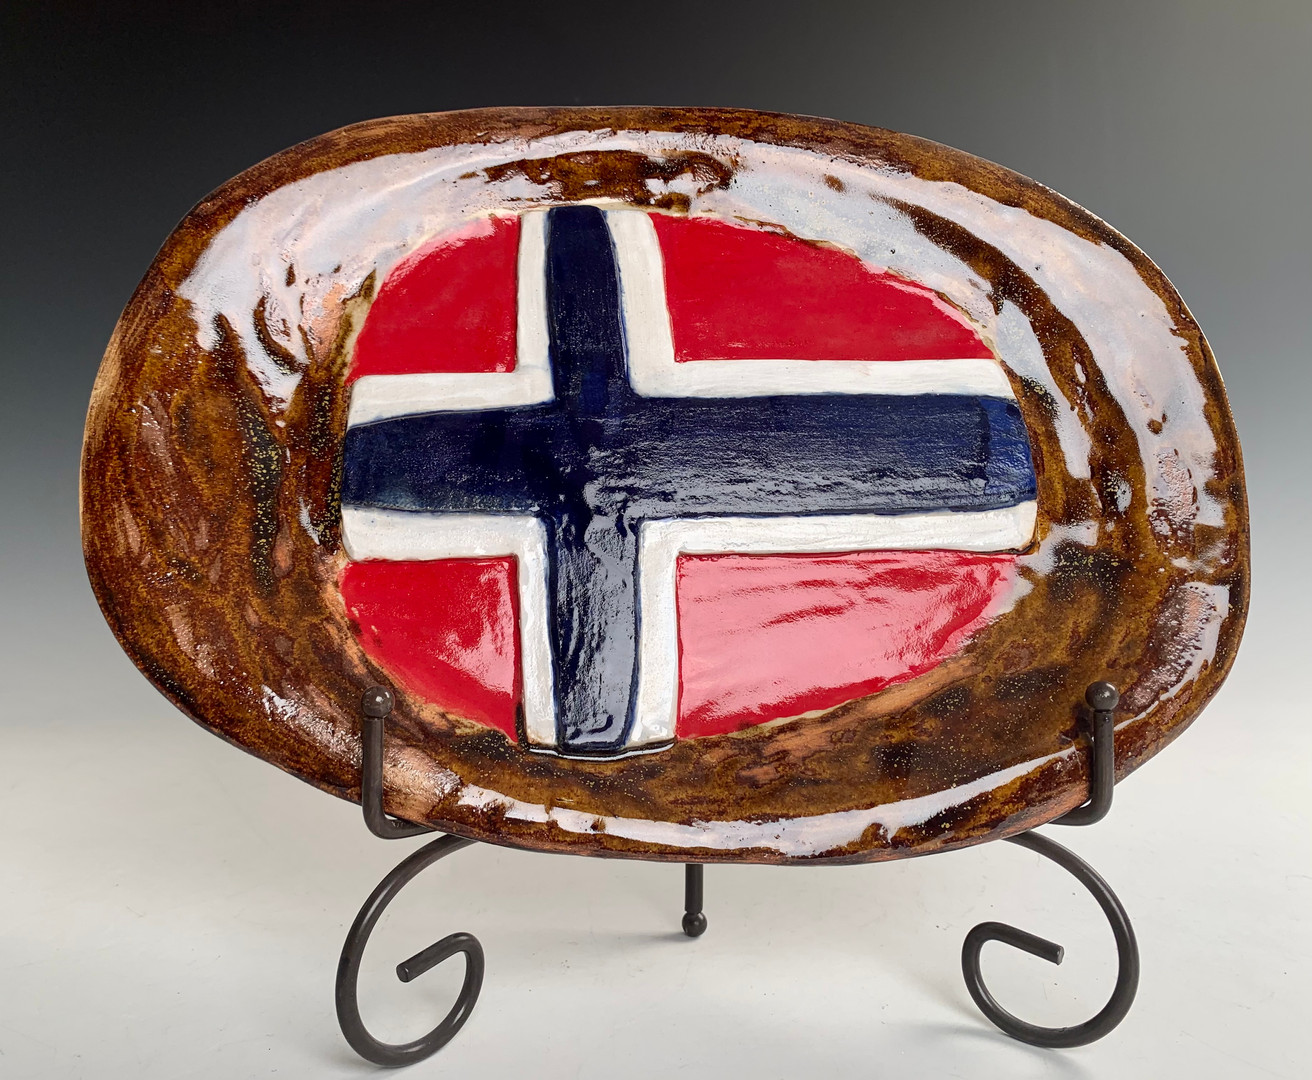 ed's norway plate.jpg